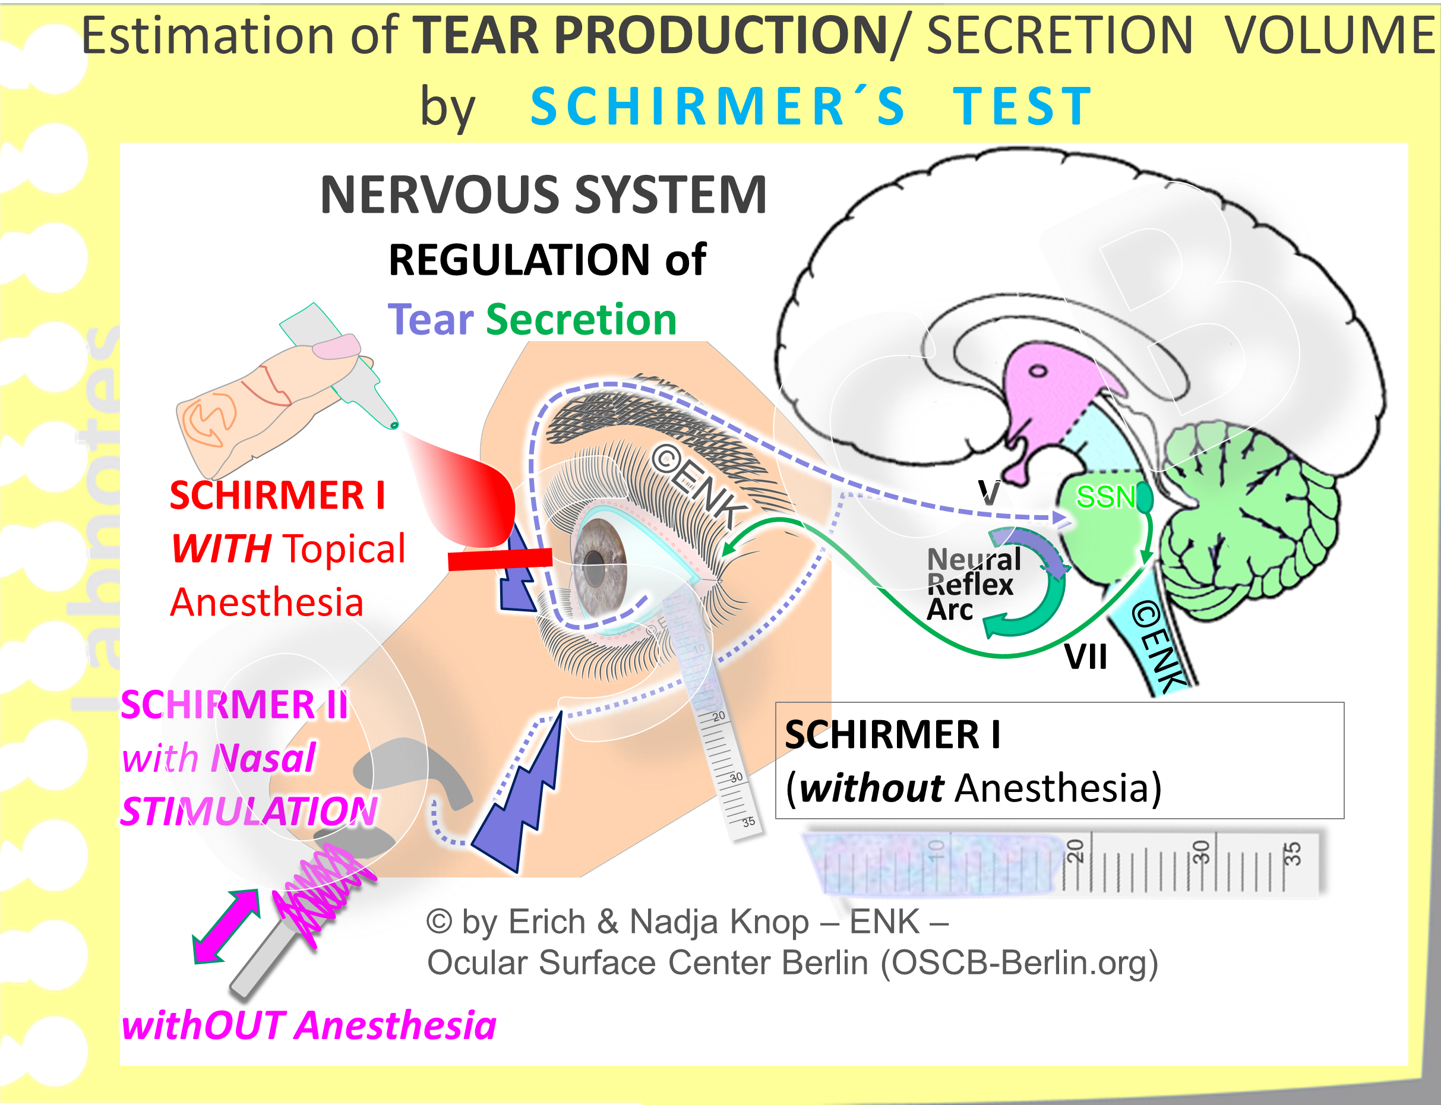 The aqueous lacrimal  SECRETION  volume is measured by SCHIRMER´s Test  that  collects the tears on a strip of filter paper , hanged over the lower temporal lid margin,  during a period of 5 minutes  . The ocular surface and the lacrimal glands are connected by a neural reflex arc for secretory regulation. It consists of the afferent sensory (blue interrupted line) and the efferent secreto-motor green solid line) nerves - together with the regulating brain stem including the efferent superior salivary nucleus (SSN dark green). There are different variations of the original test that either add a topical anesthesia or, instead, add a nasal mucosal stimulation.